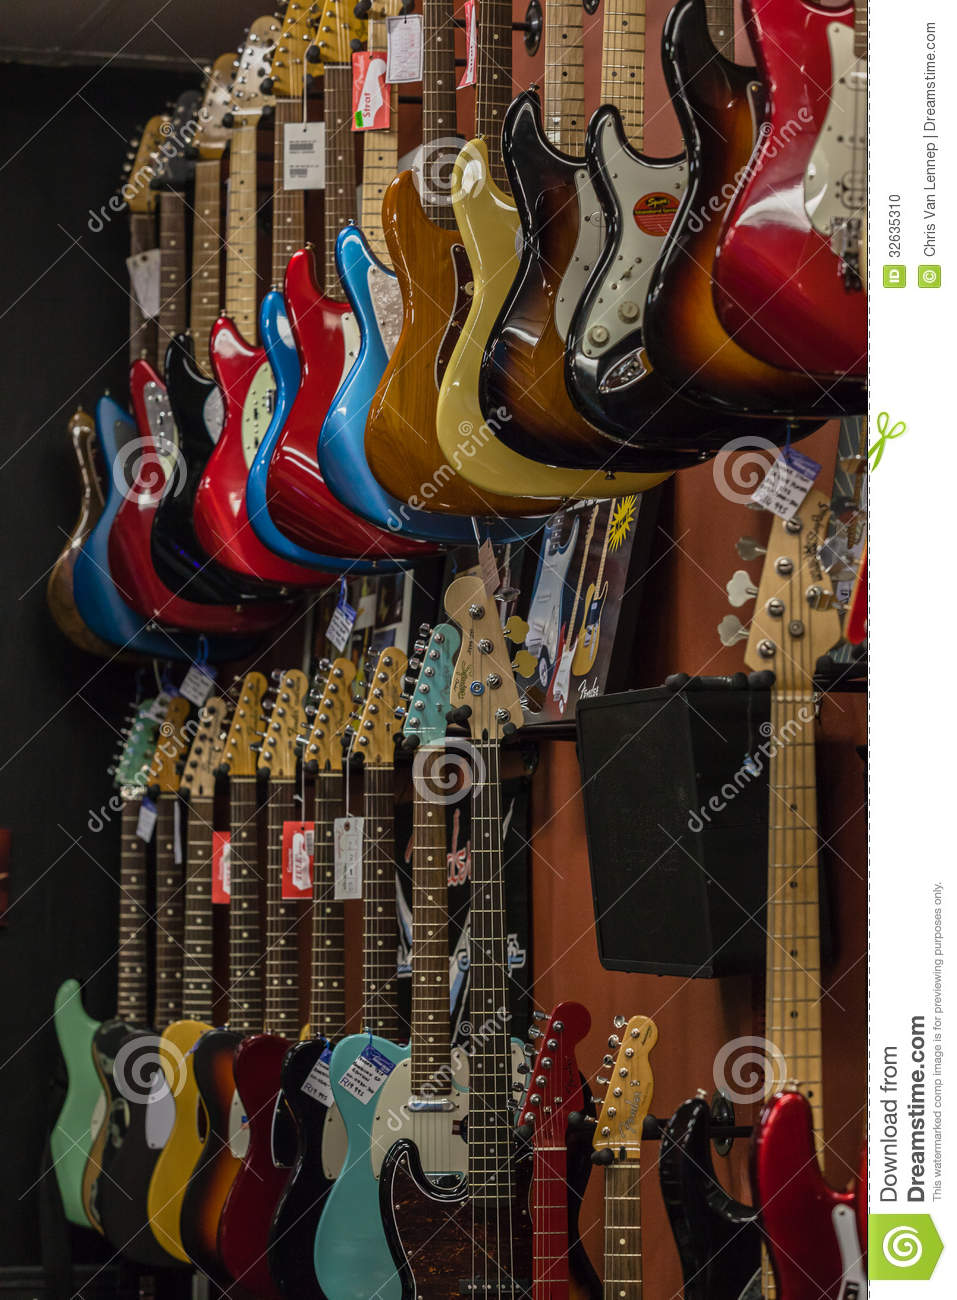 Online guitar shop south africa